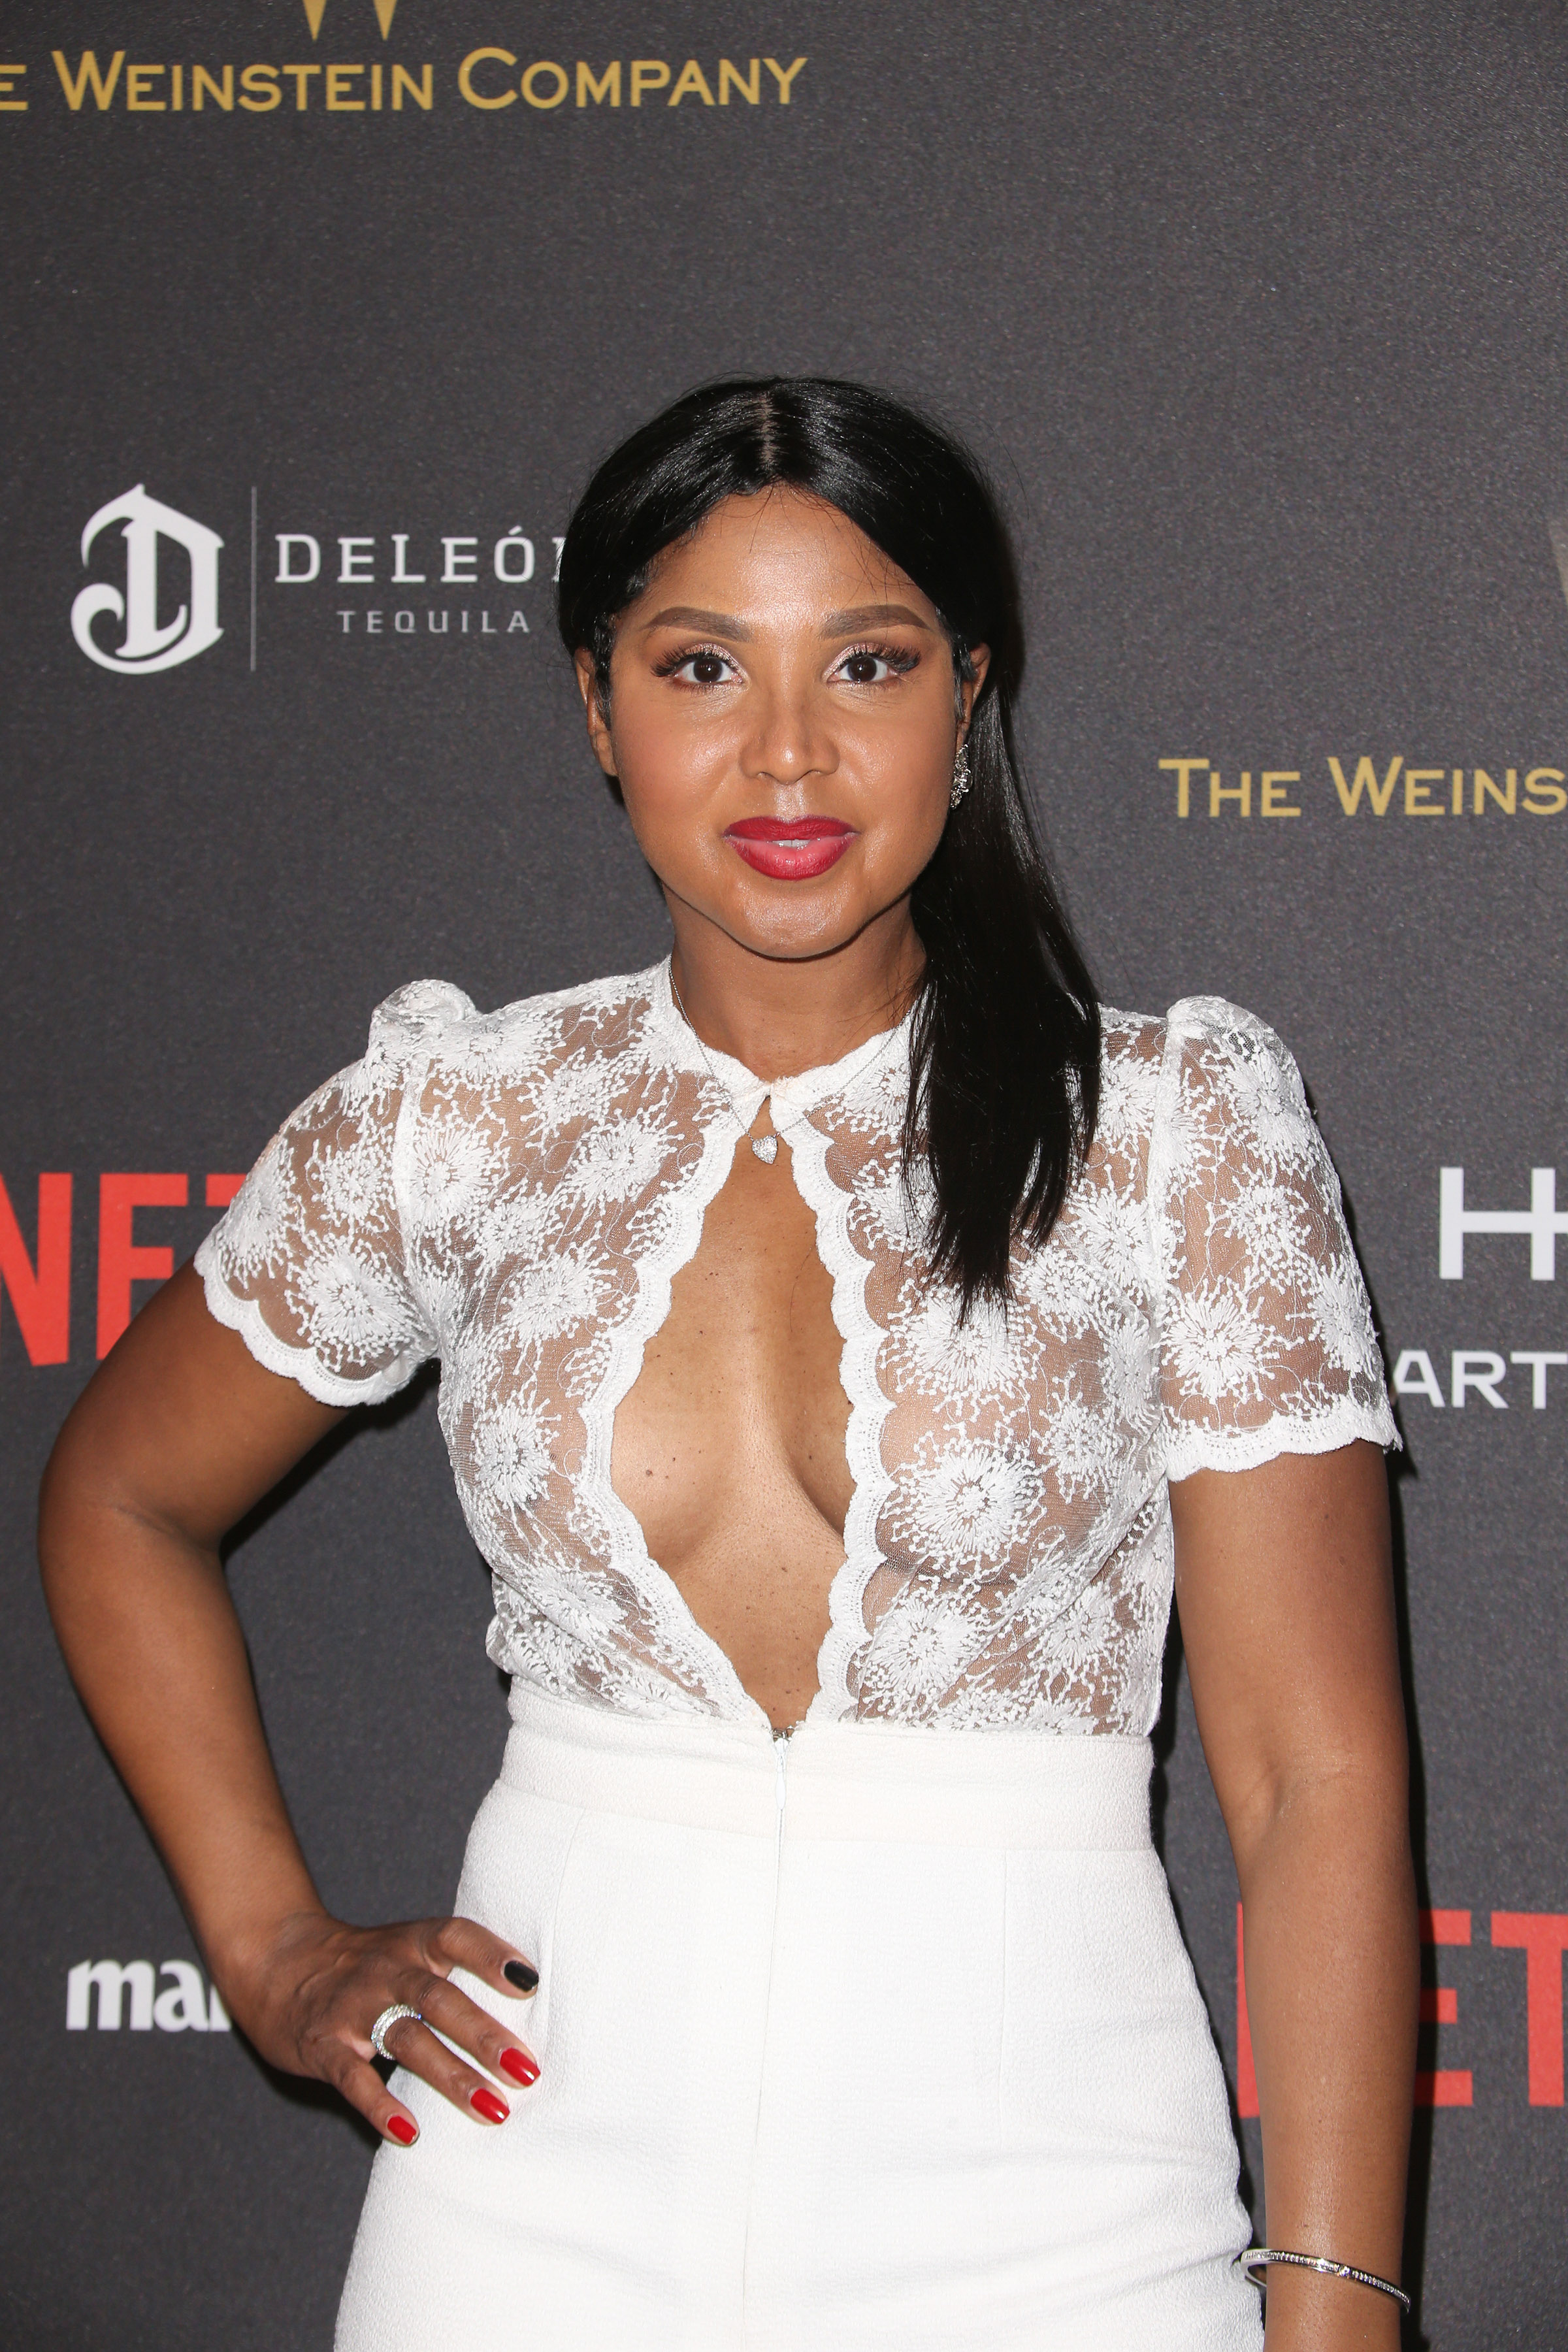 01/10/2016 - Toni Braxton - 2016 Weinstein Company and Netflix Golden Globes After Party - Arrivals - The Beverly Hilton Hotel - Beverly Hills, CA, USA - Keywords: Vertical, Social Event, Portrait, Photography, Arts Culture and Entertainment, Attending, Celebrities, Celebrity, Person, People, Topix, Bestof, 73rd Golden Globe Awards, 73rd Annual Golden Globe Awards Afterparty, Los Angeles, California Orientation: Portrait Face Count: 2 - False - Photo Credit: PRPhotos.com - Contact (1-866-551-7827) - Portrait Face Count: 2